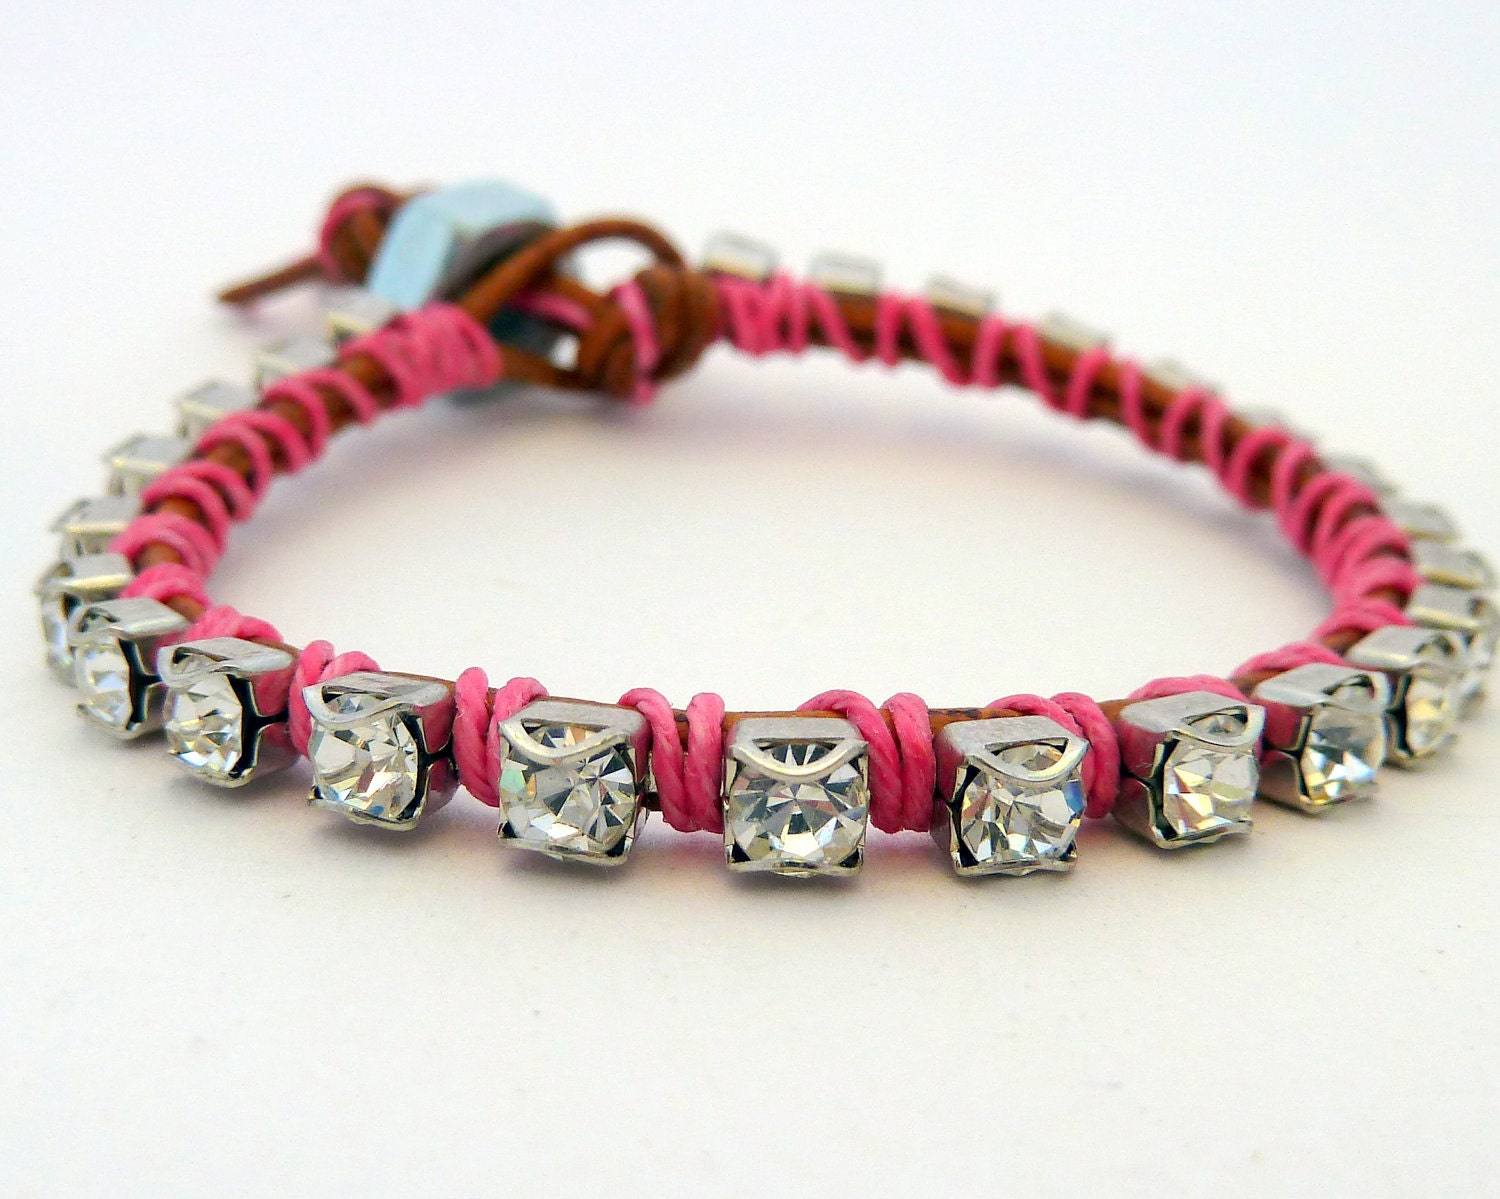 Rhinestone friendship bracelet / brown/ pink / silver - sukoshishop